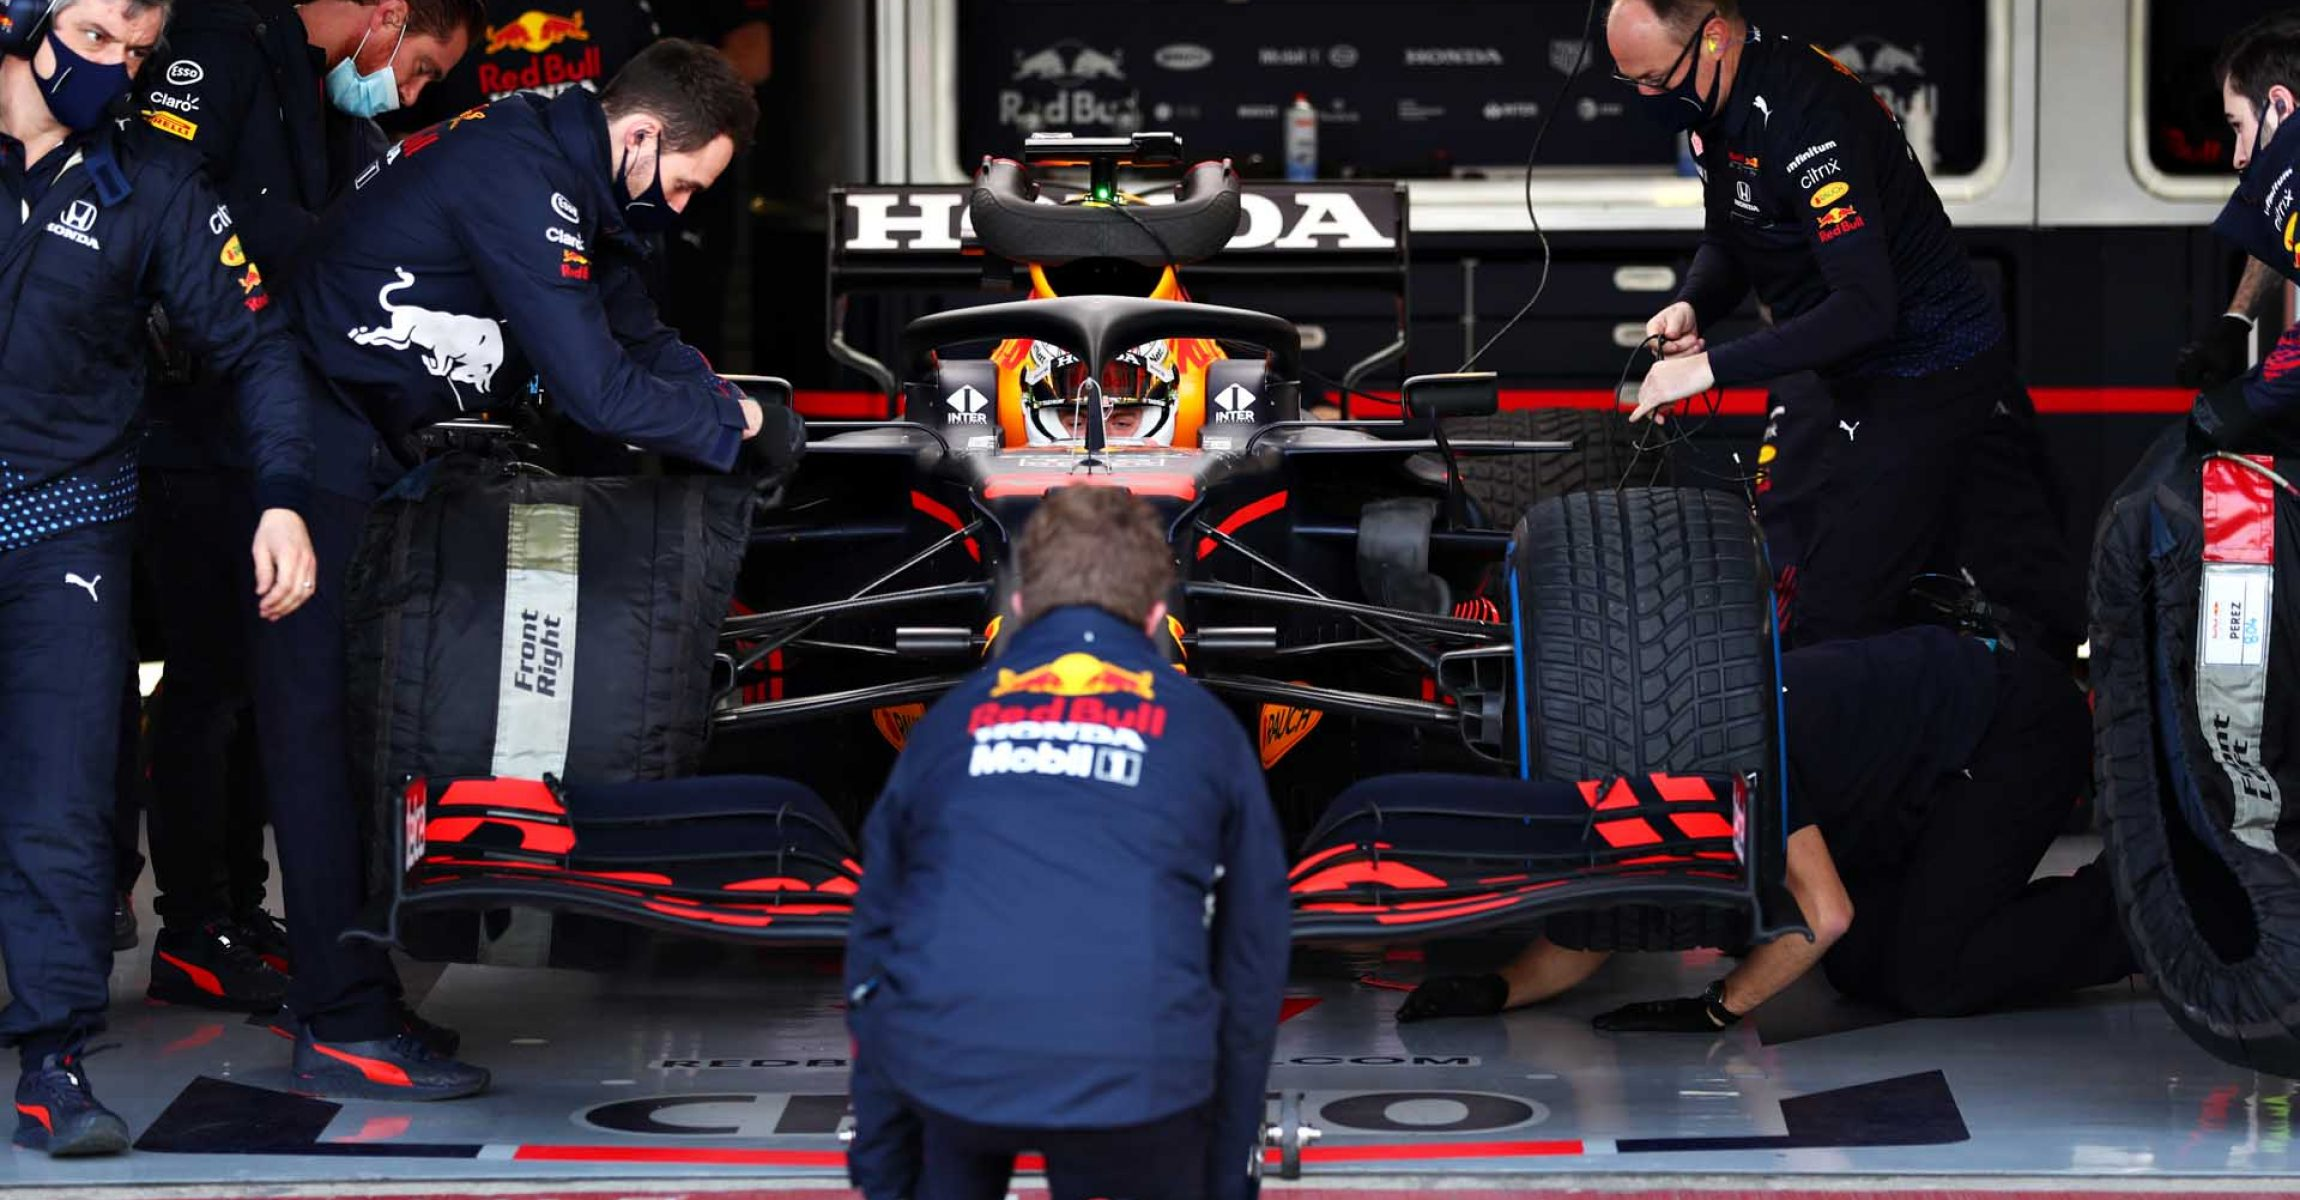 NORTHAMPTON, ENGLAND - FEBRUARY 24: Max Verstappen of Netherlands and Red Bull Racing prepares to drive in the garage during the Red Bull Racing Filming Day at Silverstone on February 24, 2021 in Northampton, England. (Photo by Dan Istitene/Getty Images for Red Bull Racing)